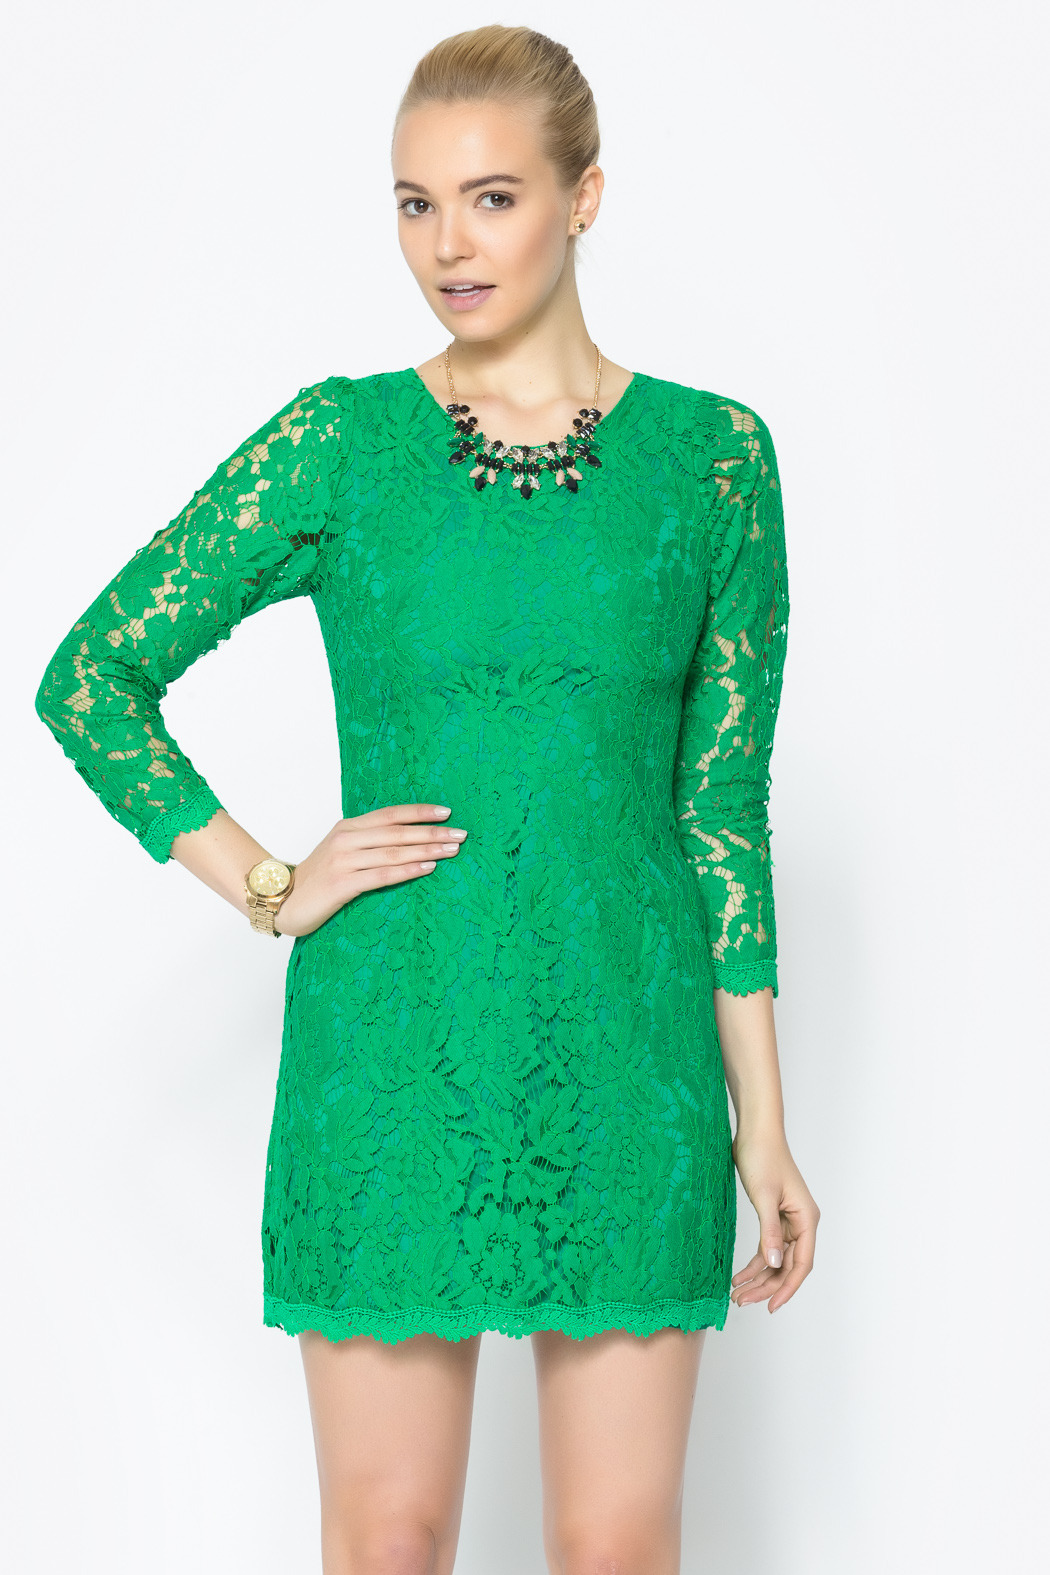 Green Lace Dress | Dressed Up Girl